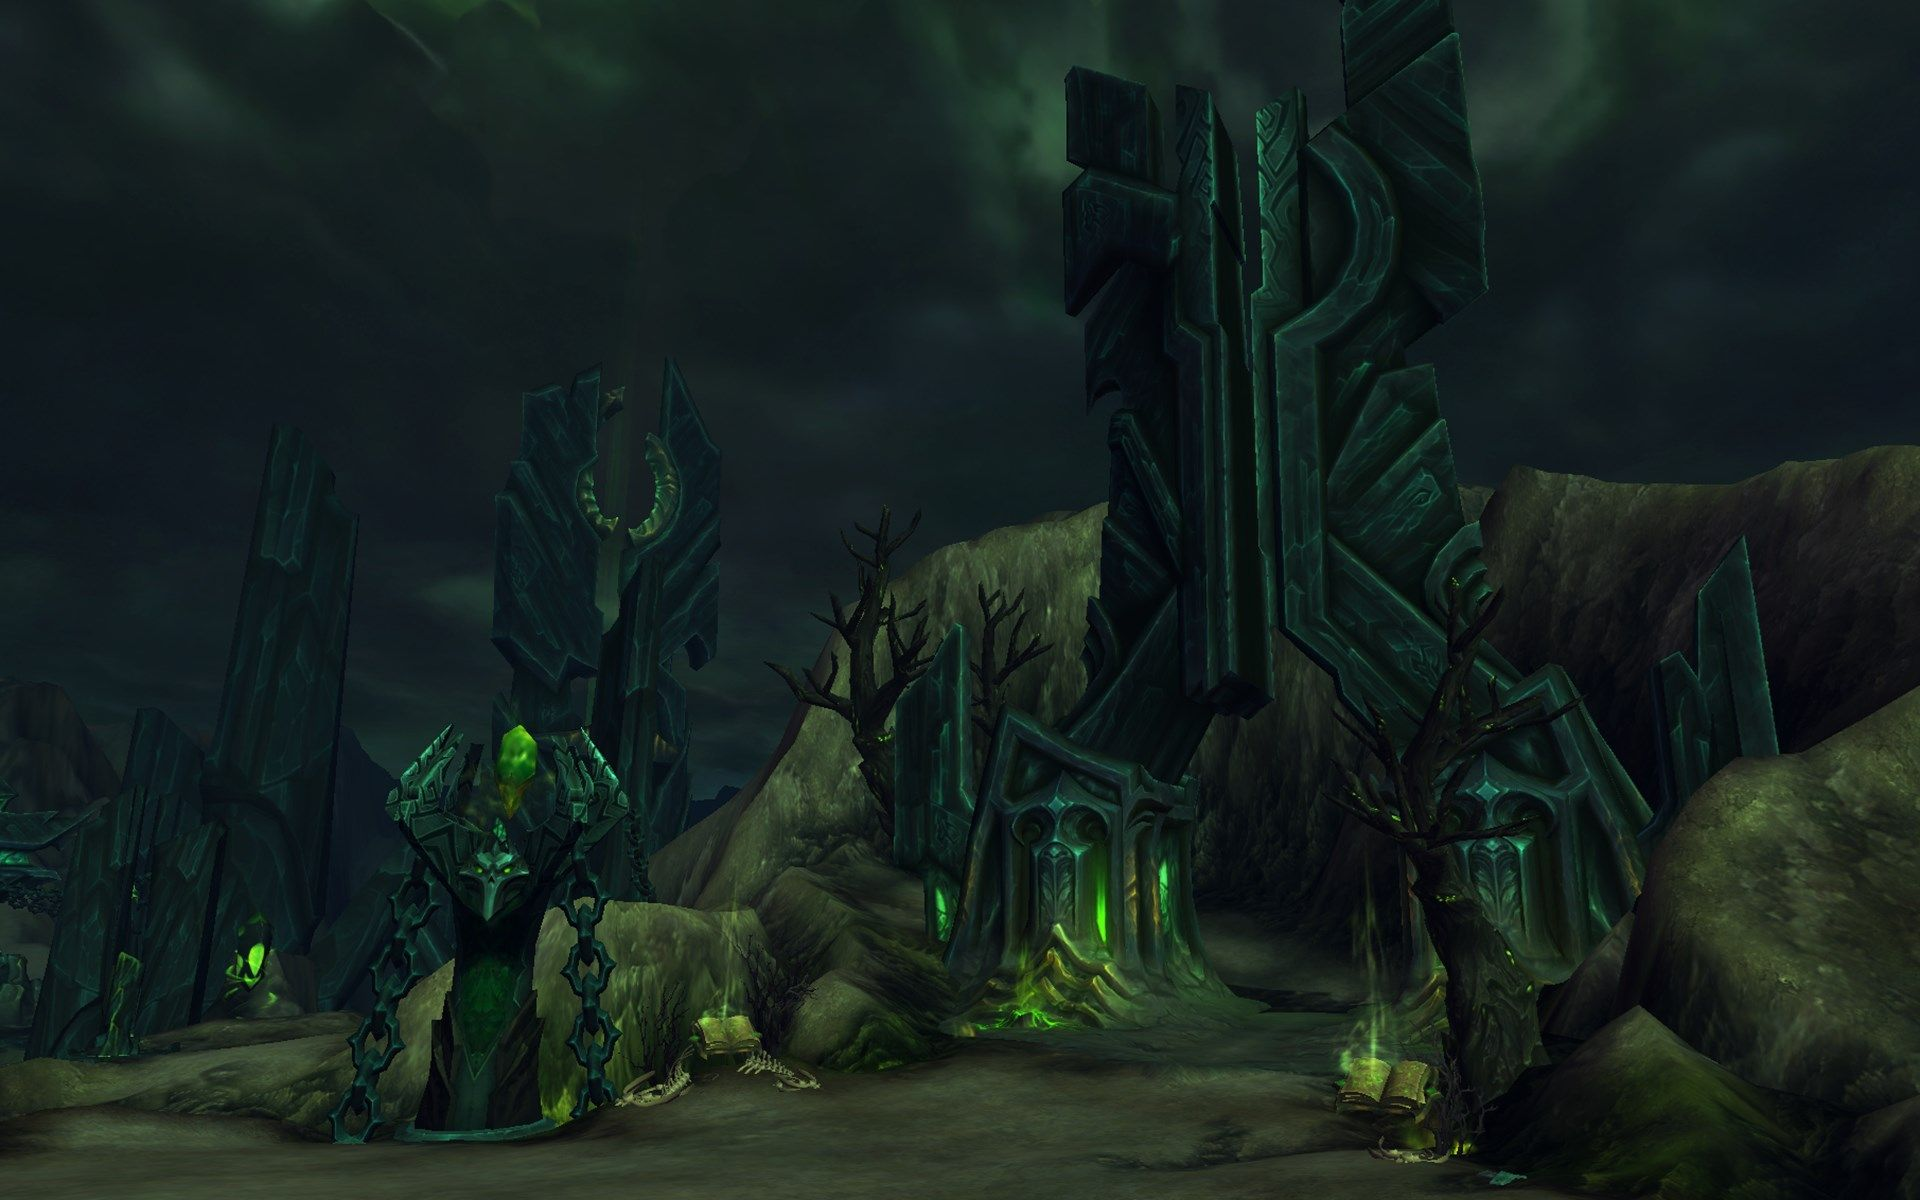 world-of-warcraft-screenshot-21